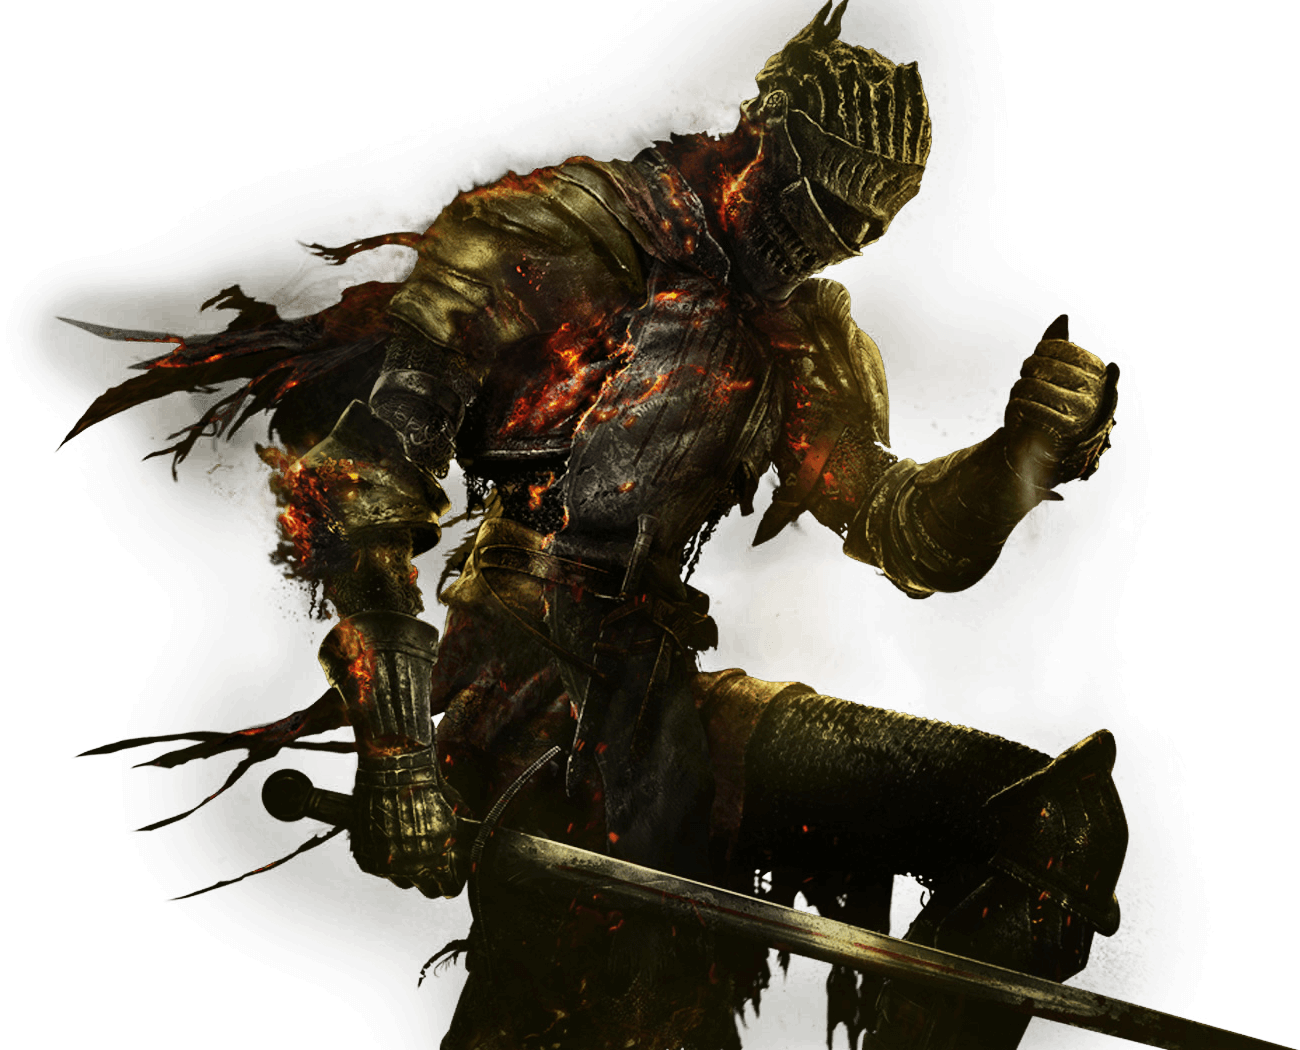 Dark souls remastered clipart vector free library Dark Souls PNG Images Transparent Free Download   PNGMart.com vector free library